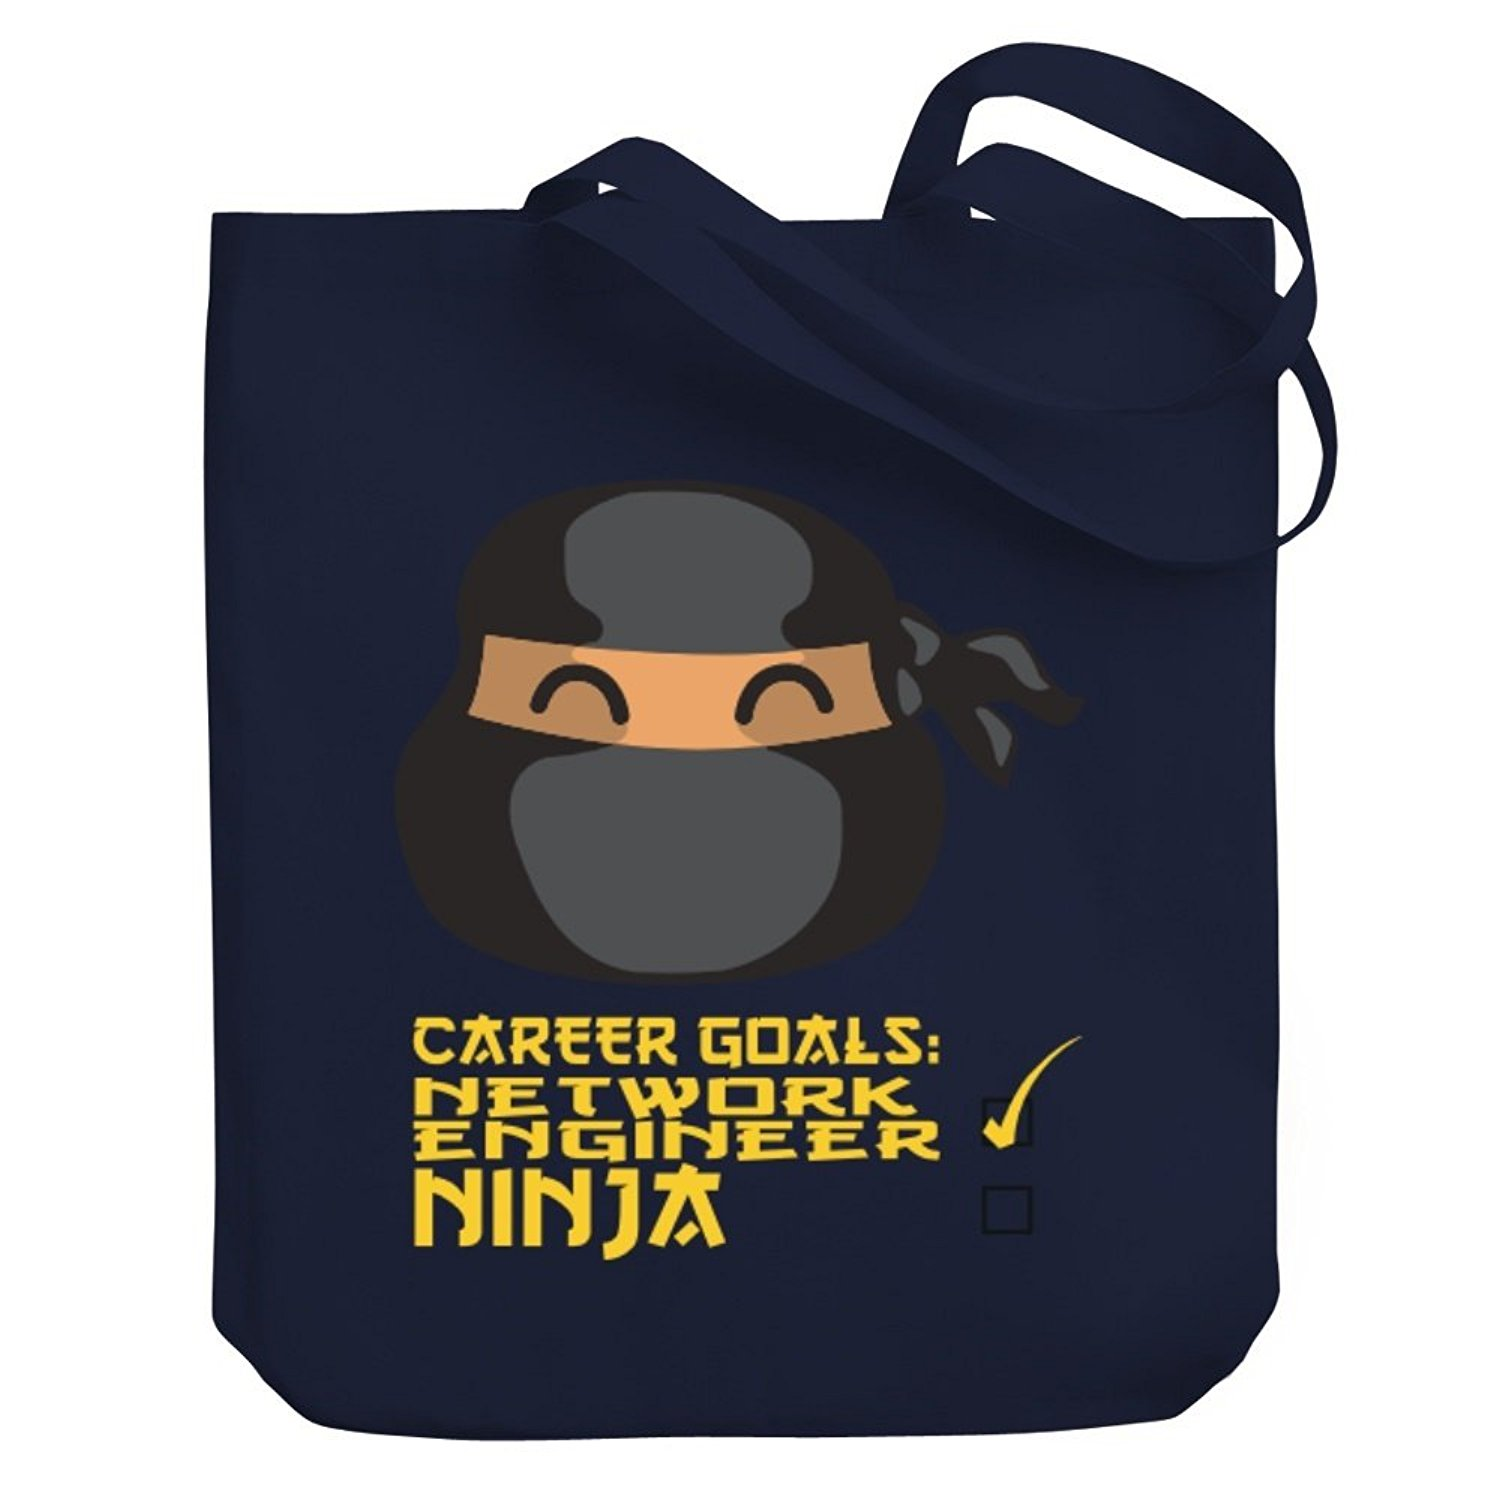 be6ca1f4 Get Quotations · Teeburon Career Goals Network Engineer Ninja Canvas Tote  Bag